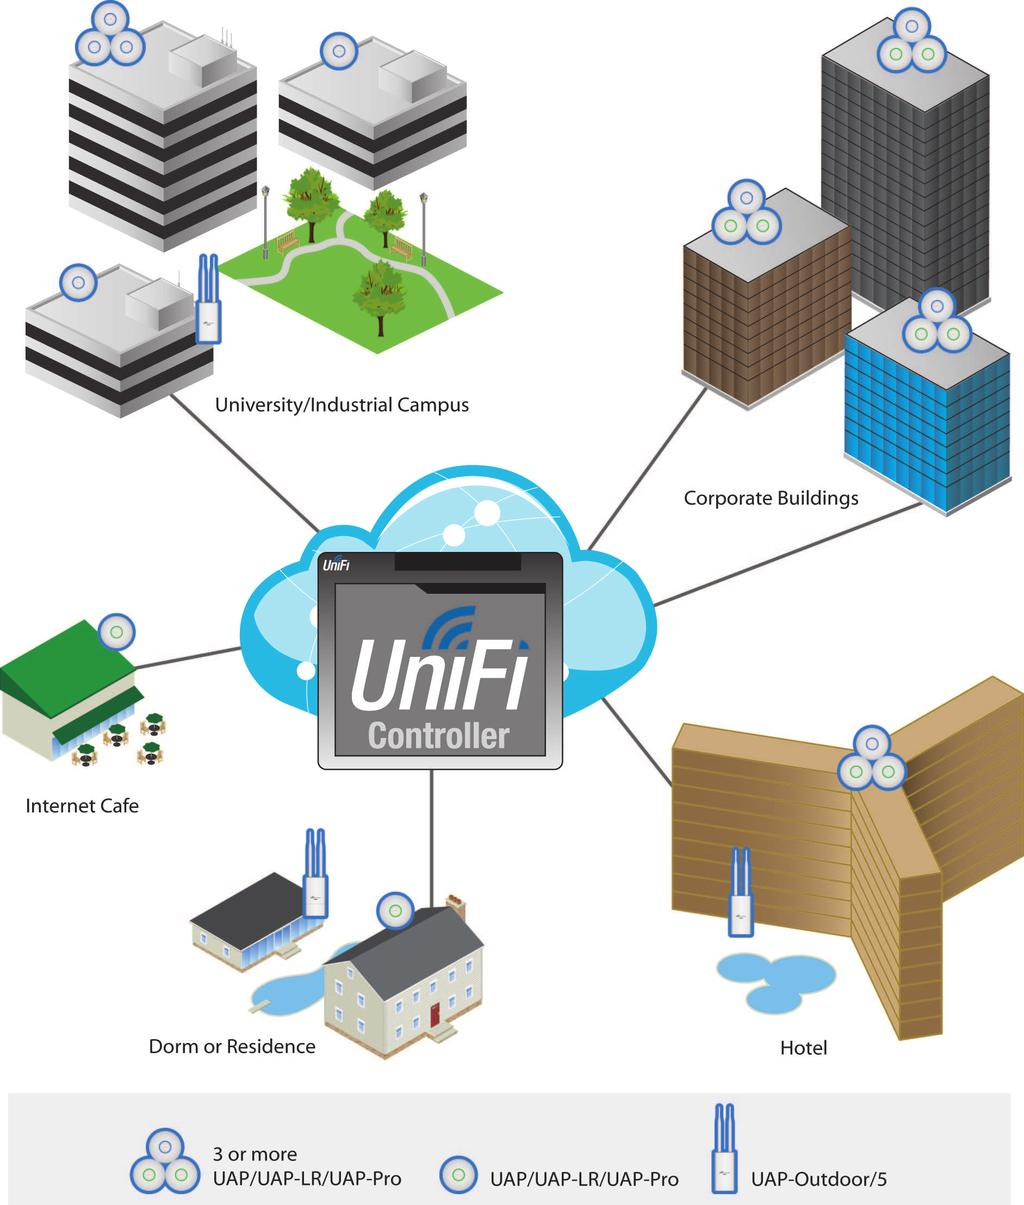 With the UniFi Controller software running in a NOC or in the cloud, administrators can extend and centrally manage wide areas of indoor and outdoor coverage using any combination of UniFi AP devices.